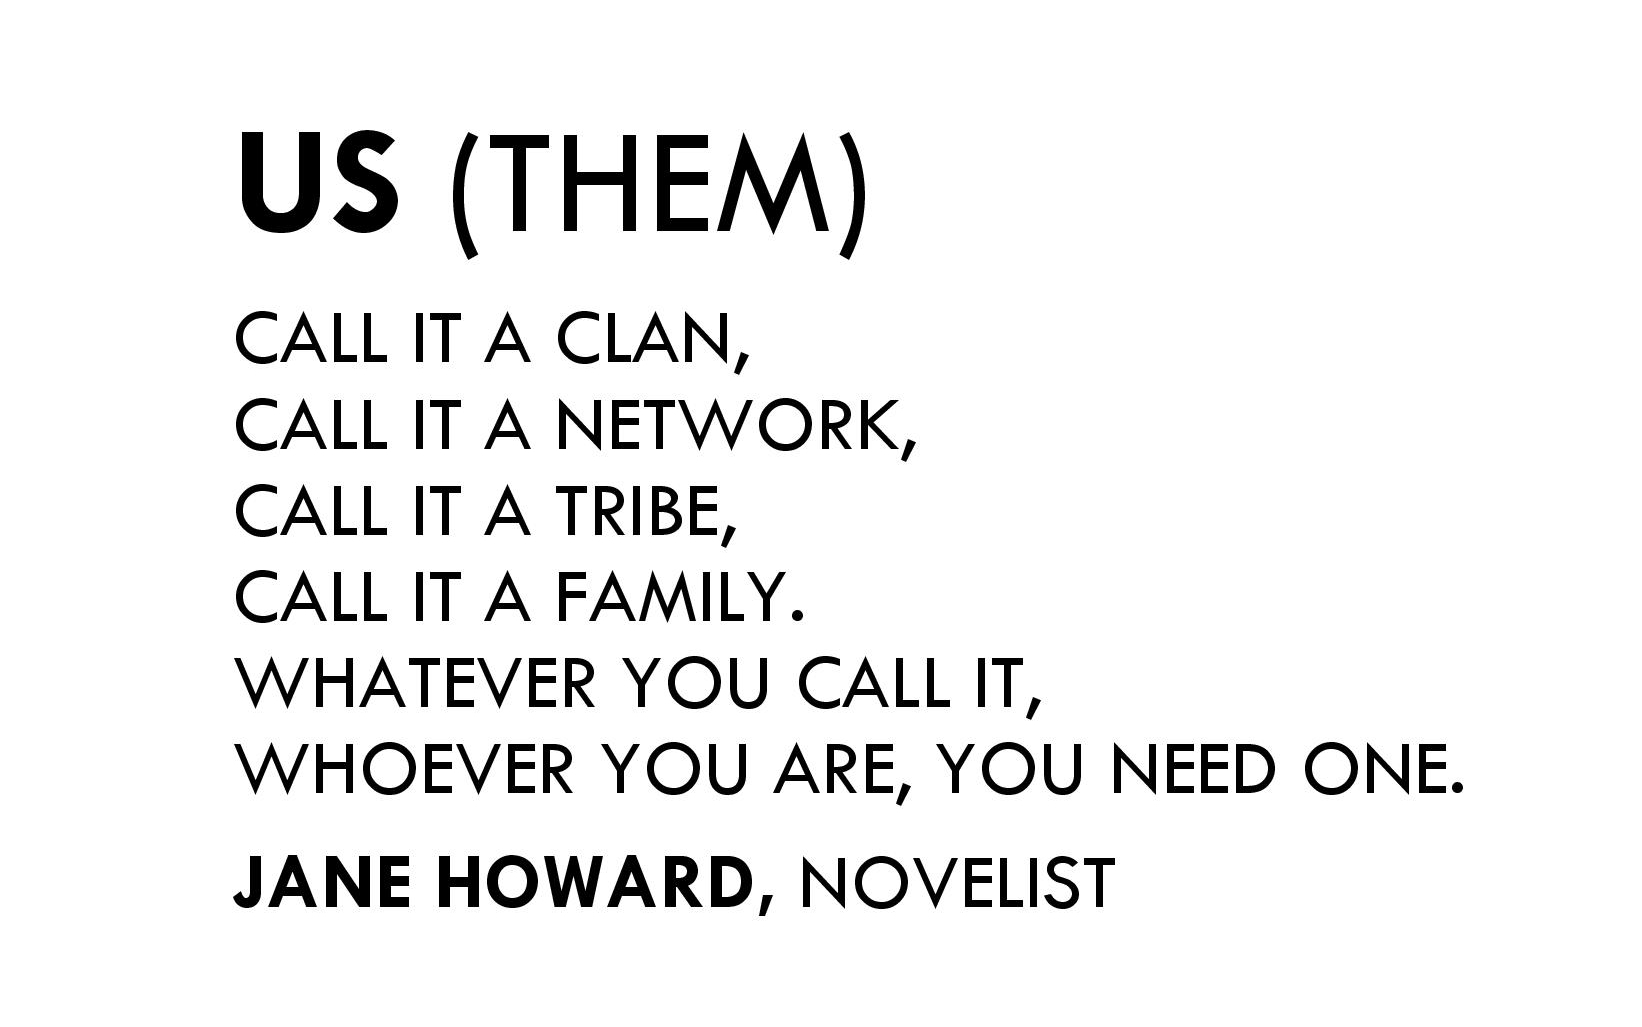 GROUP THINK - 03.2016 - US (THEM) - Jane Howard quotation.jpg